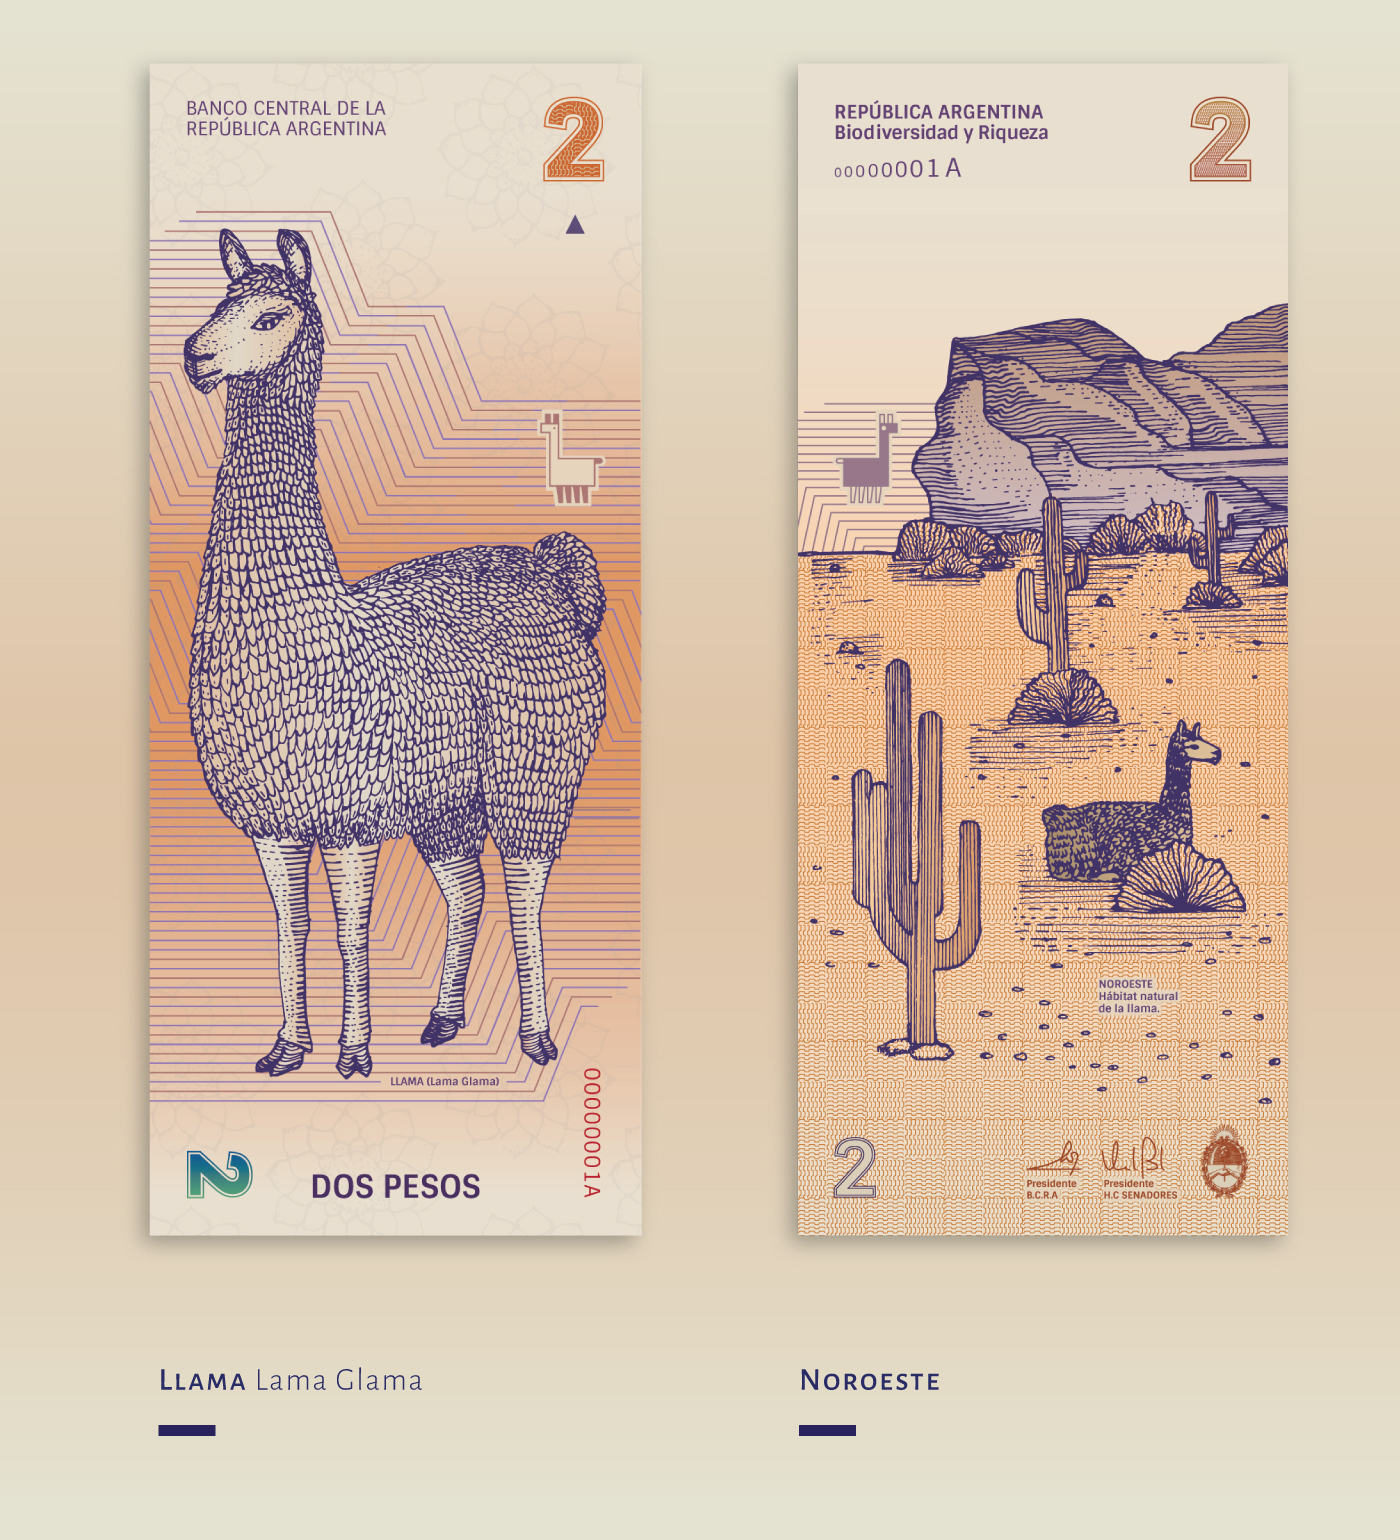 Redesign of the Argentinean Bills by Gilda Martini & Gabriela Lubiano